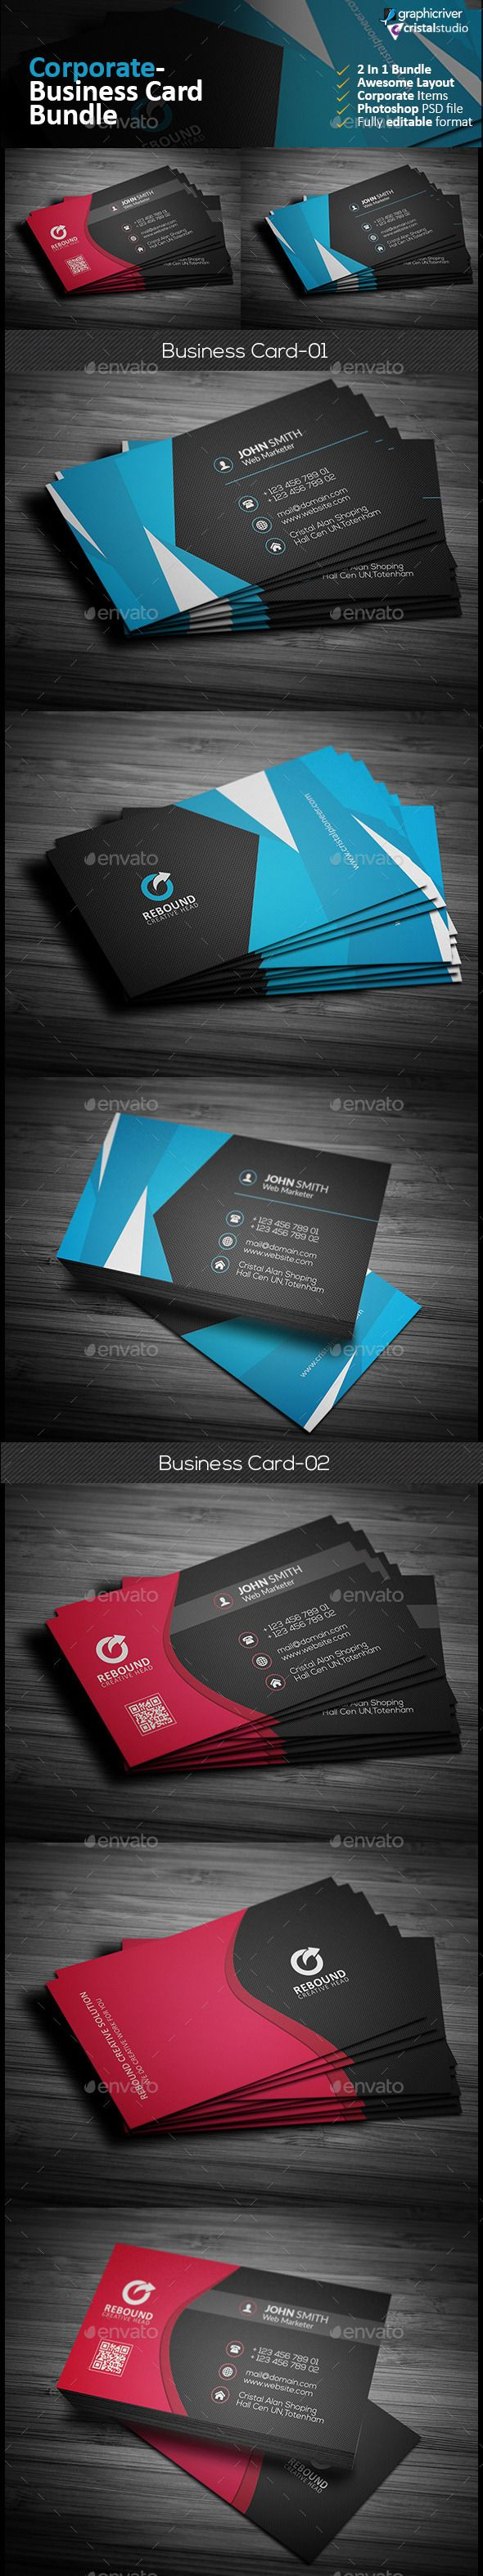 54 best Supper Creative Business Card images on Pinterest | Business ...